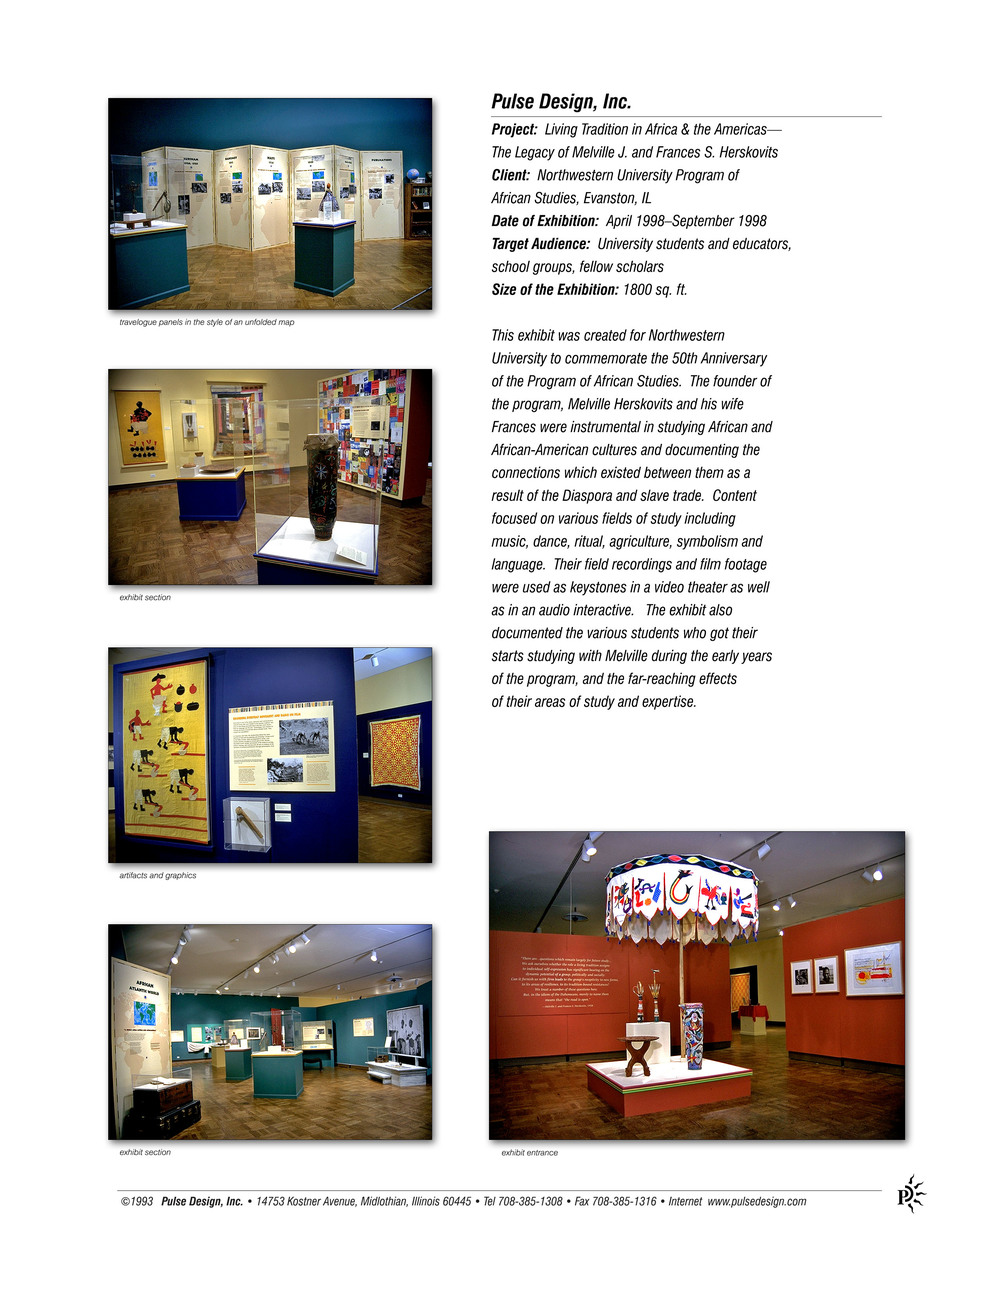 Herskovits-Exhibit-Pulse-Design-Inc.jpg